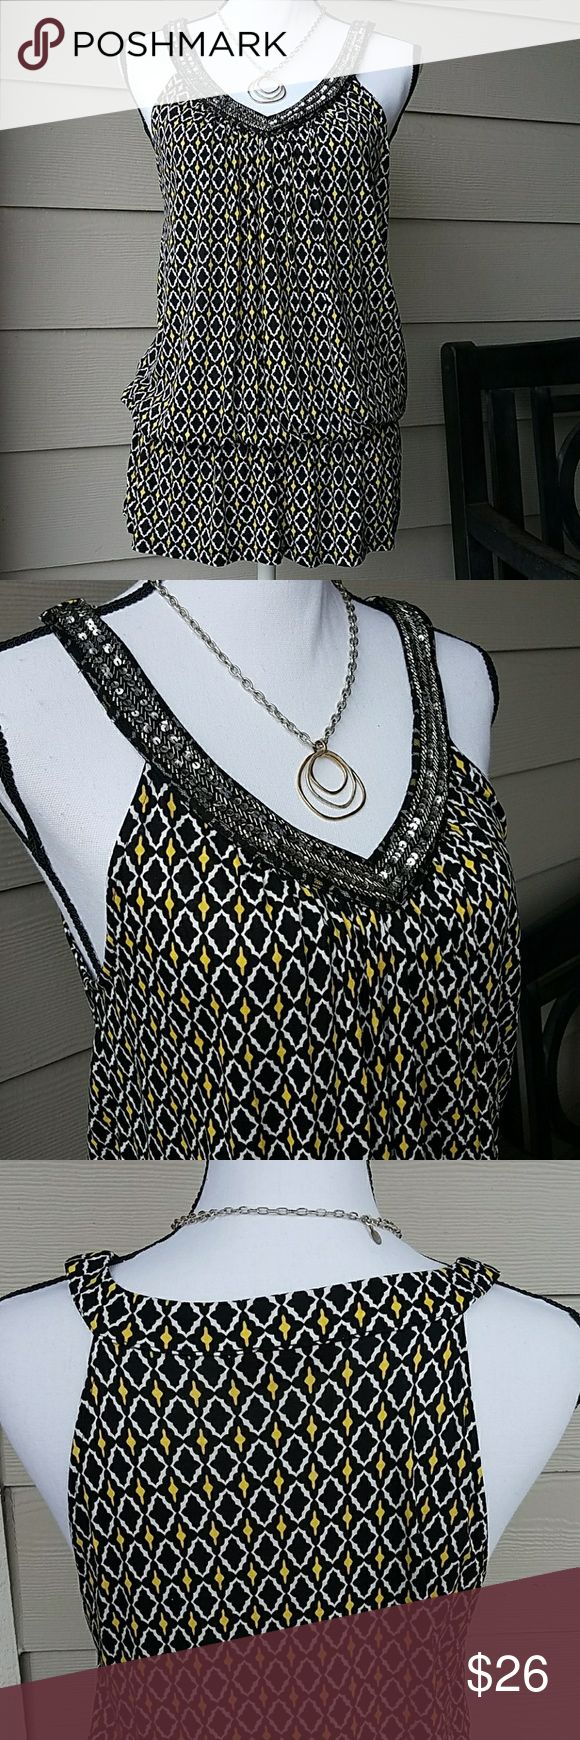 Macy's INC Top W/Sequin & Beading Detail SZ Large V-neck with Sequin and Beading Detail around Neckline,  Elastic below Waist, Colors:  Yellow, White, Black, Cut in Shoulders. Excellent Condition - tried on Never Wore. INC International Concepts Tops